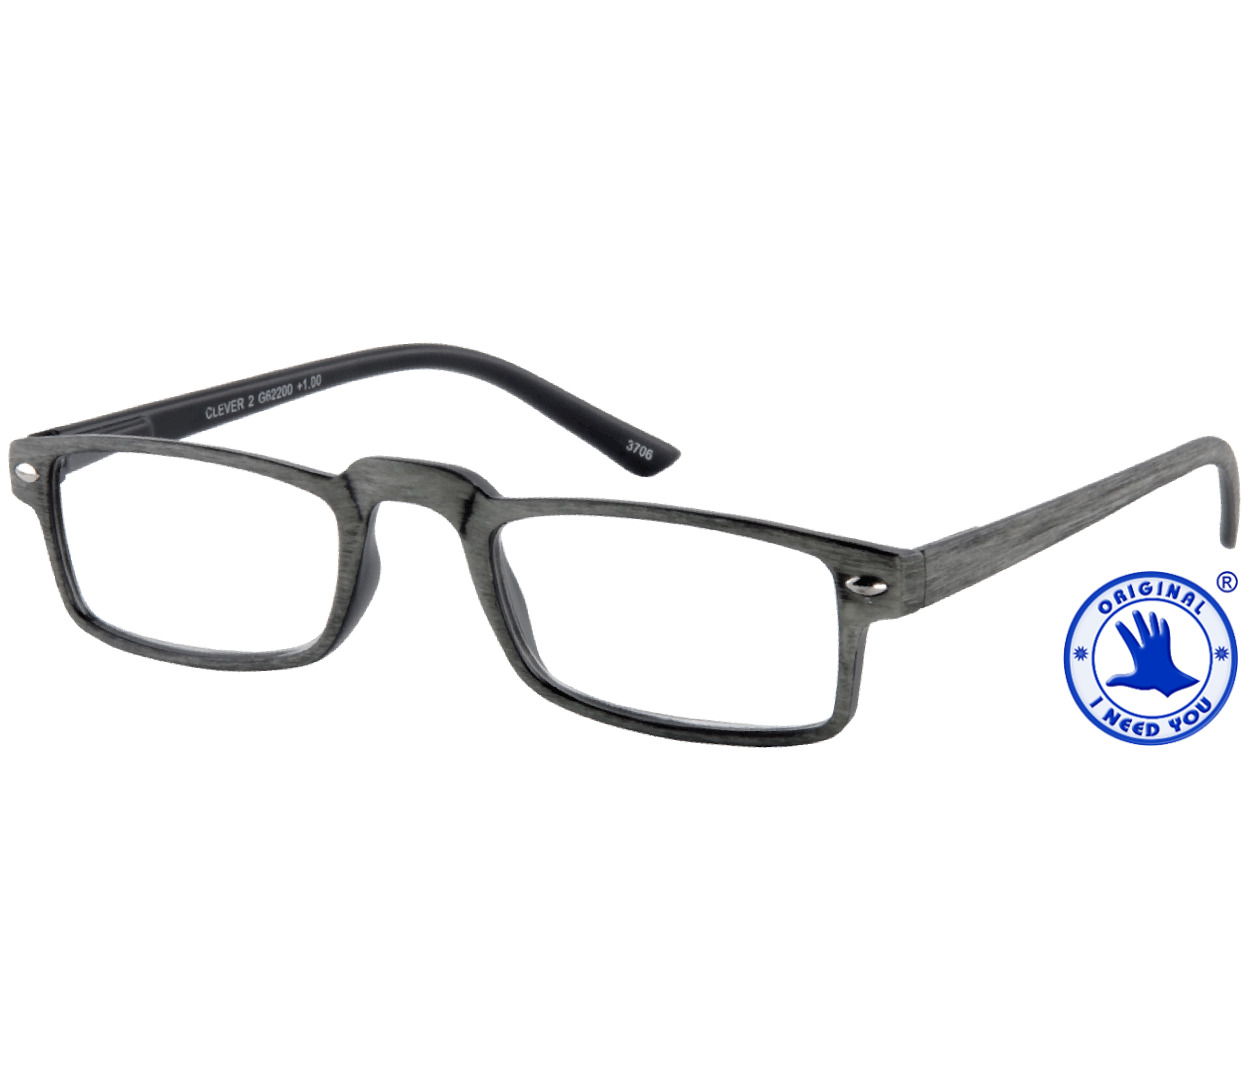 Main Image (Angle) - Clever (Grey) Classic Reading Glasses